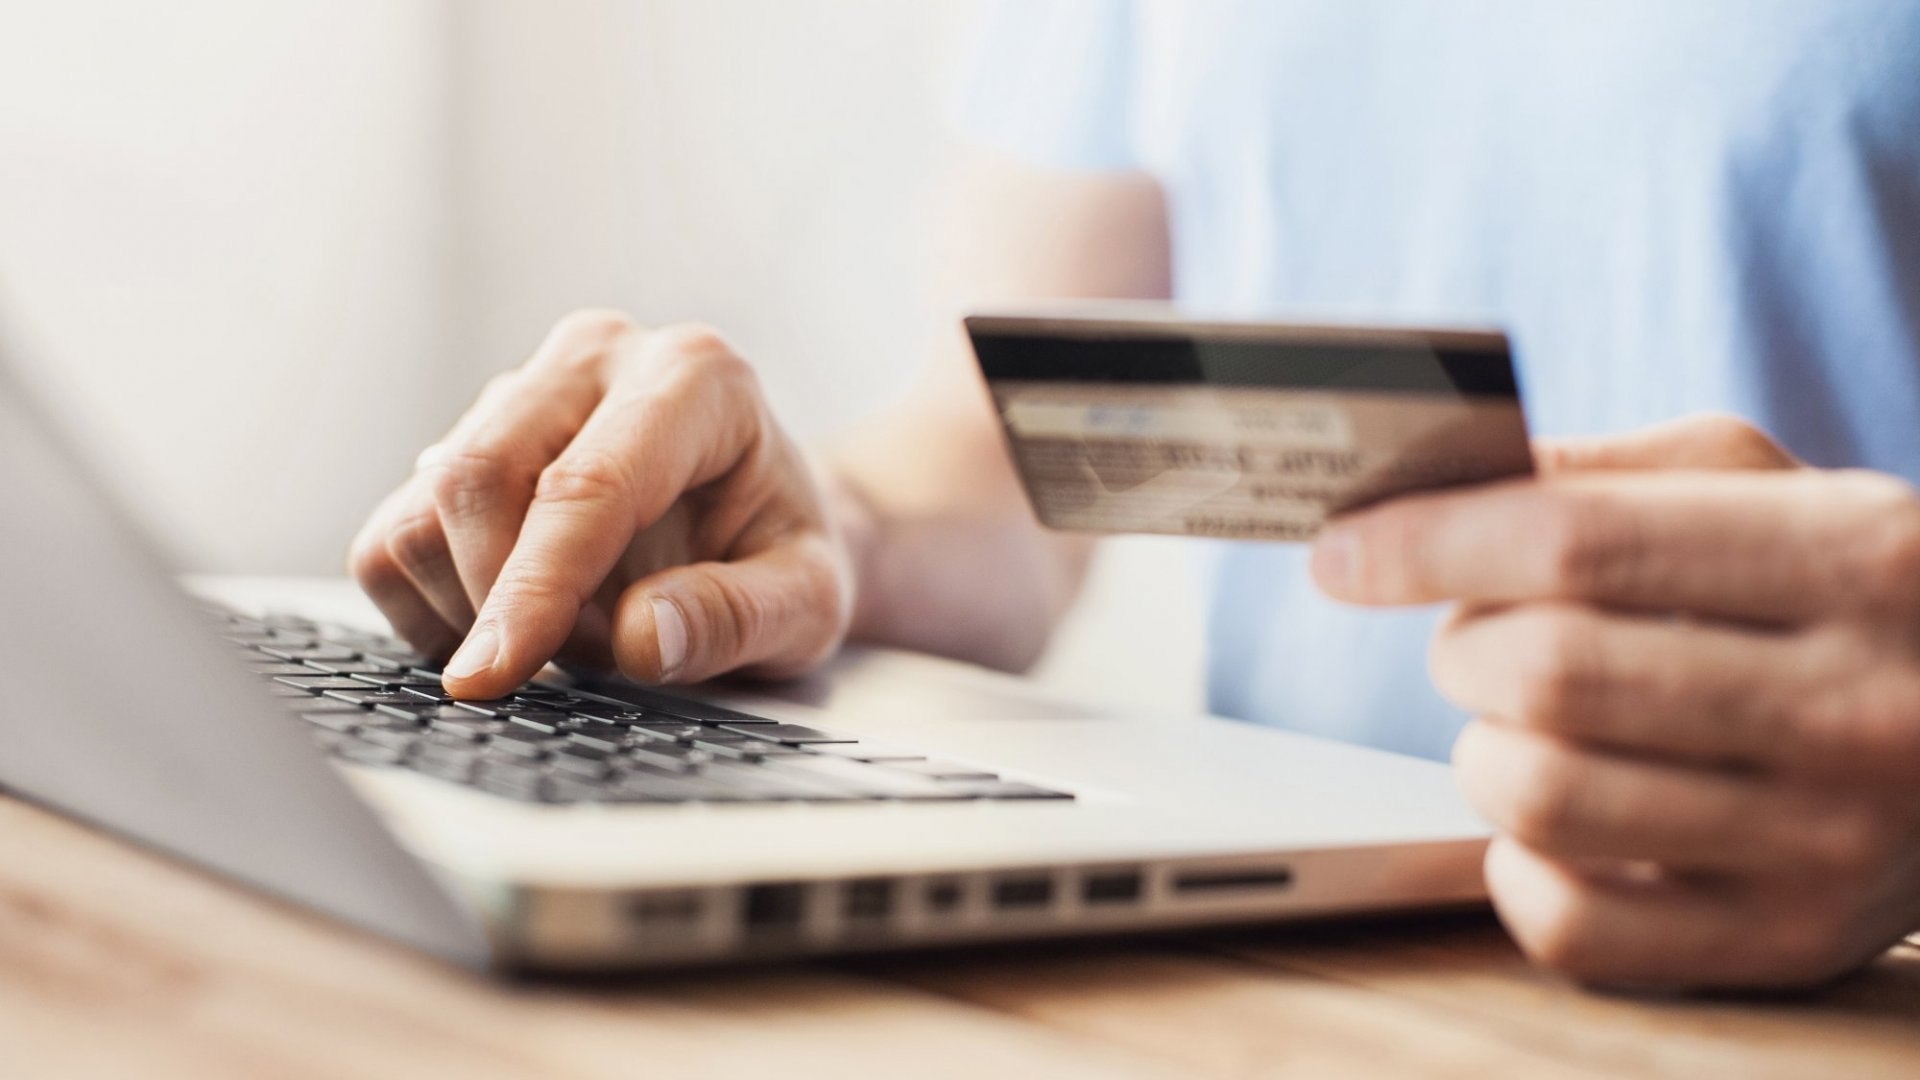 Your Credit Card Rewards Points Could Be Costing You Tax Dollars. Here's How to Find Out